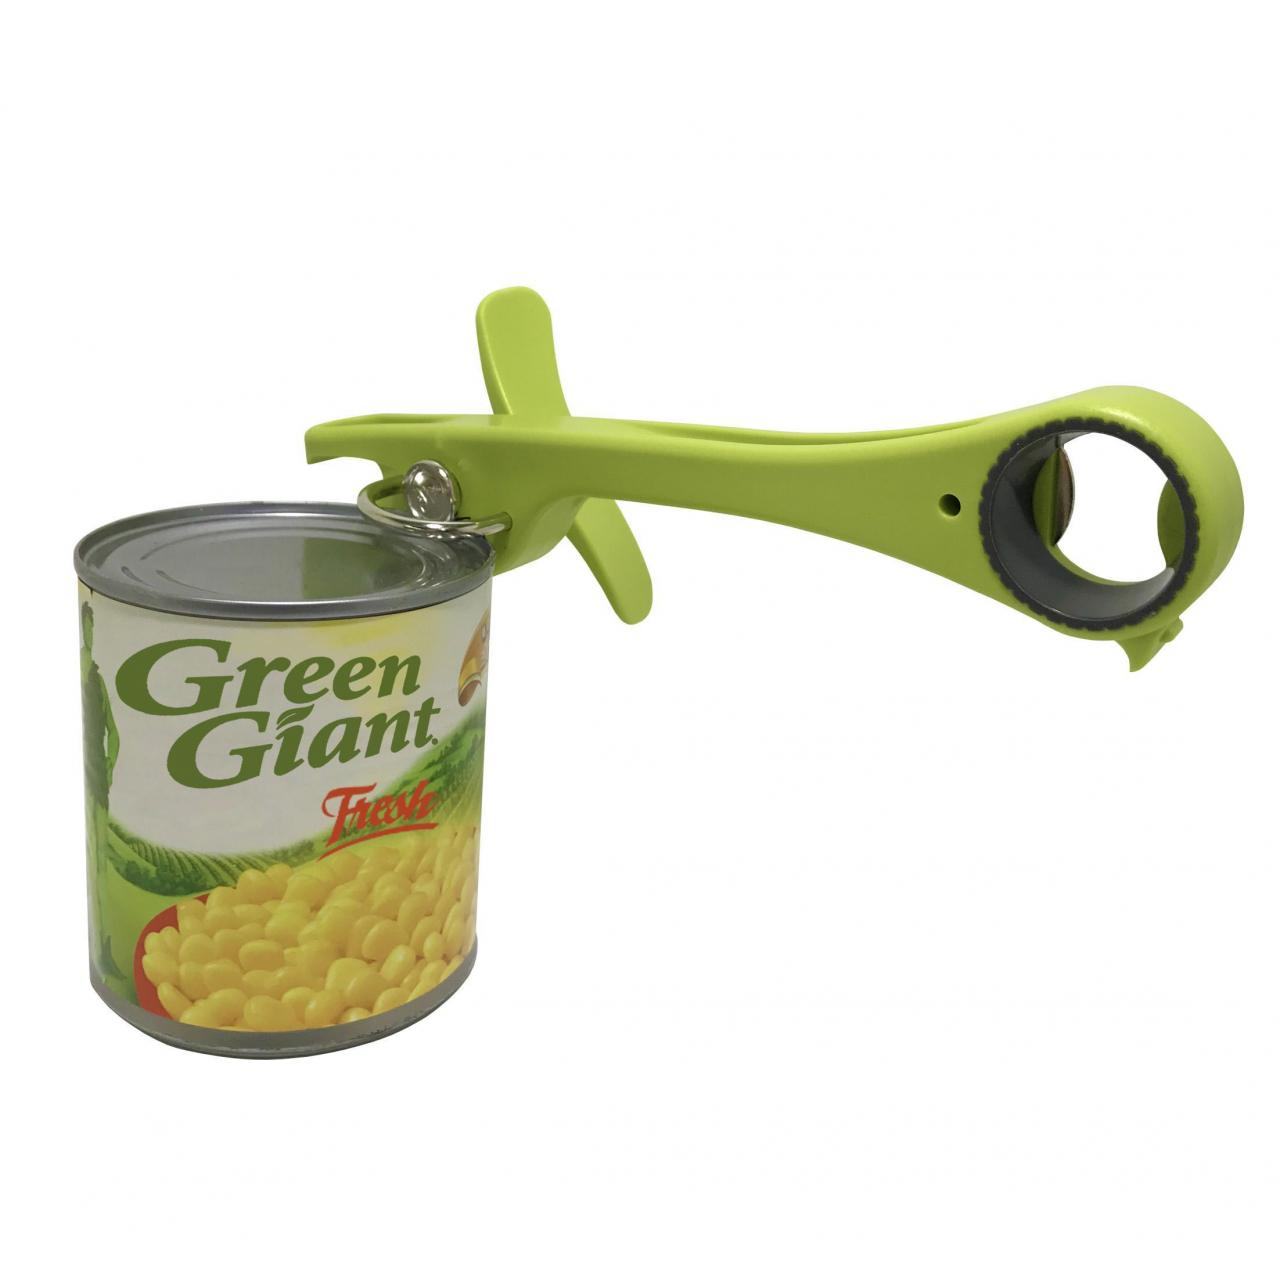 6in1 Safety can opener Manufactures